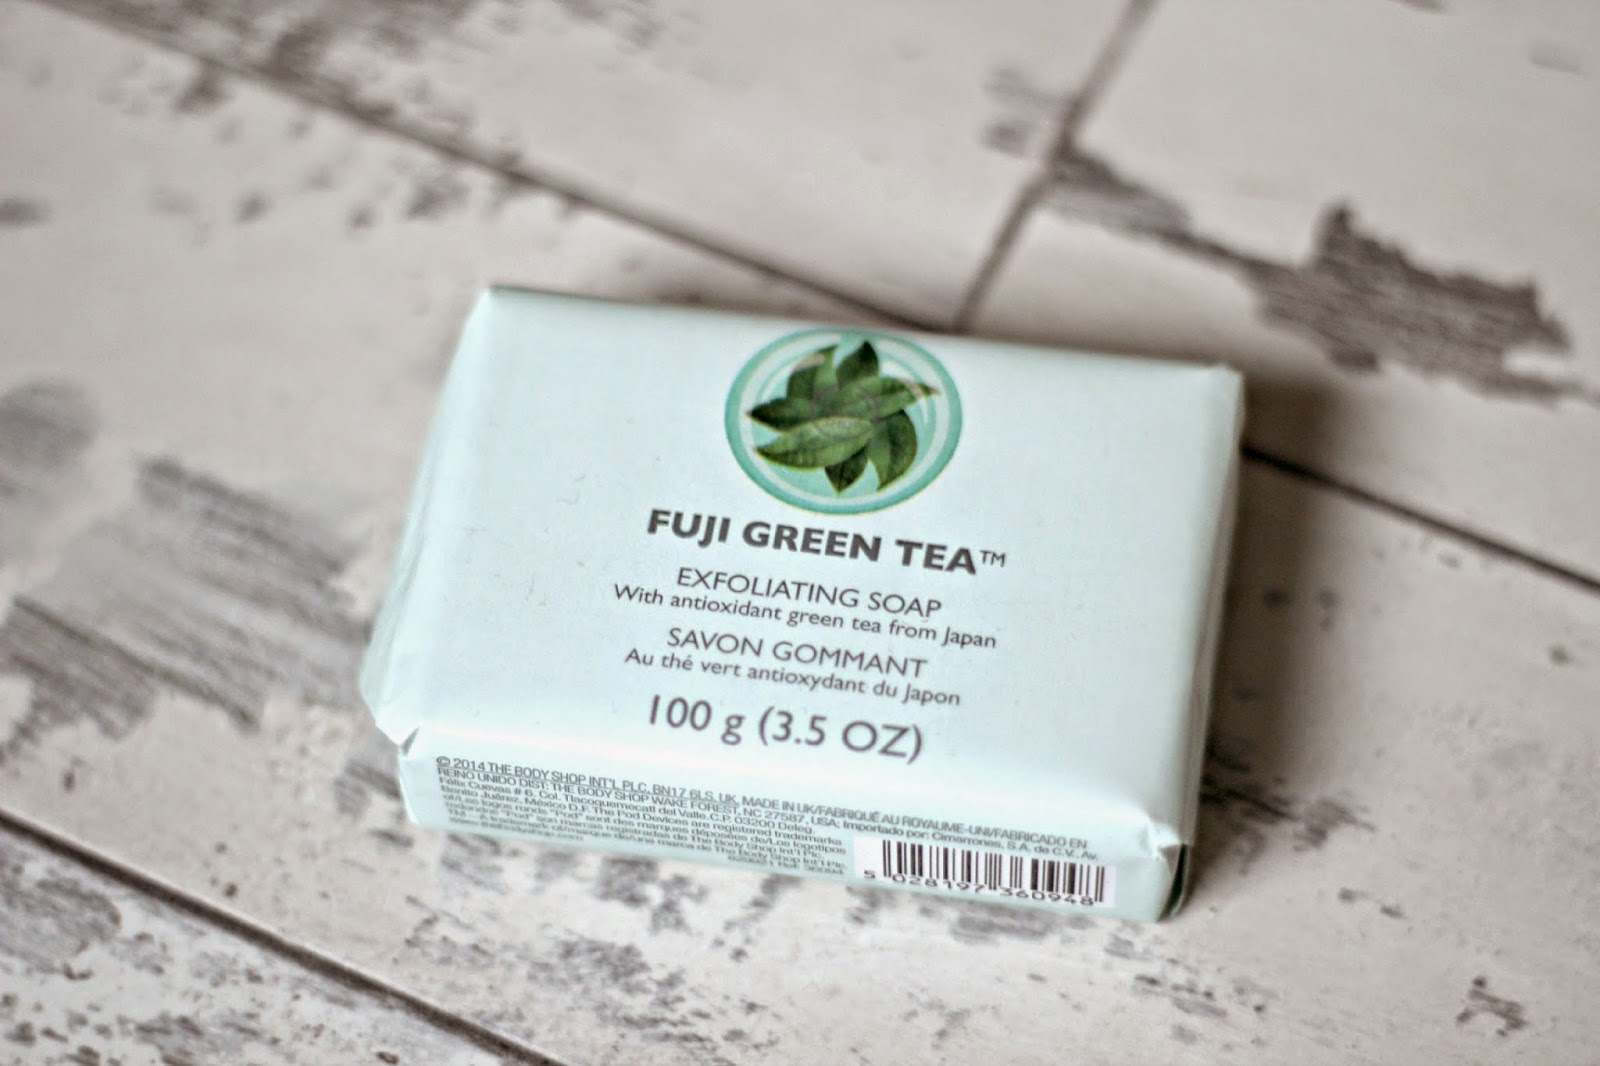 The Body Shop Fuji Green Tea Exfoliating Soap Ashley Rose